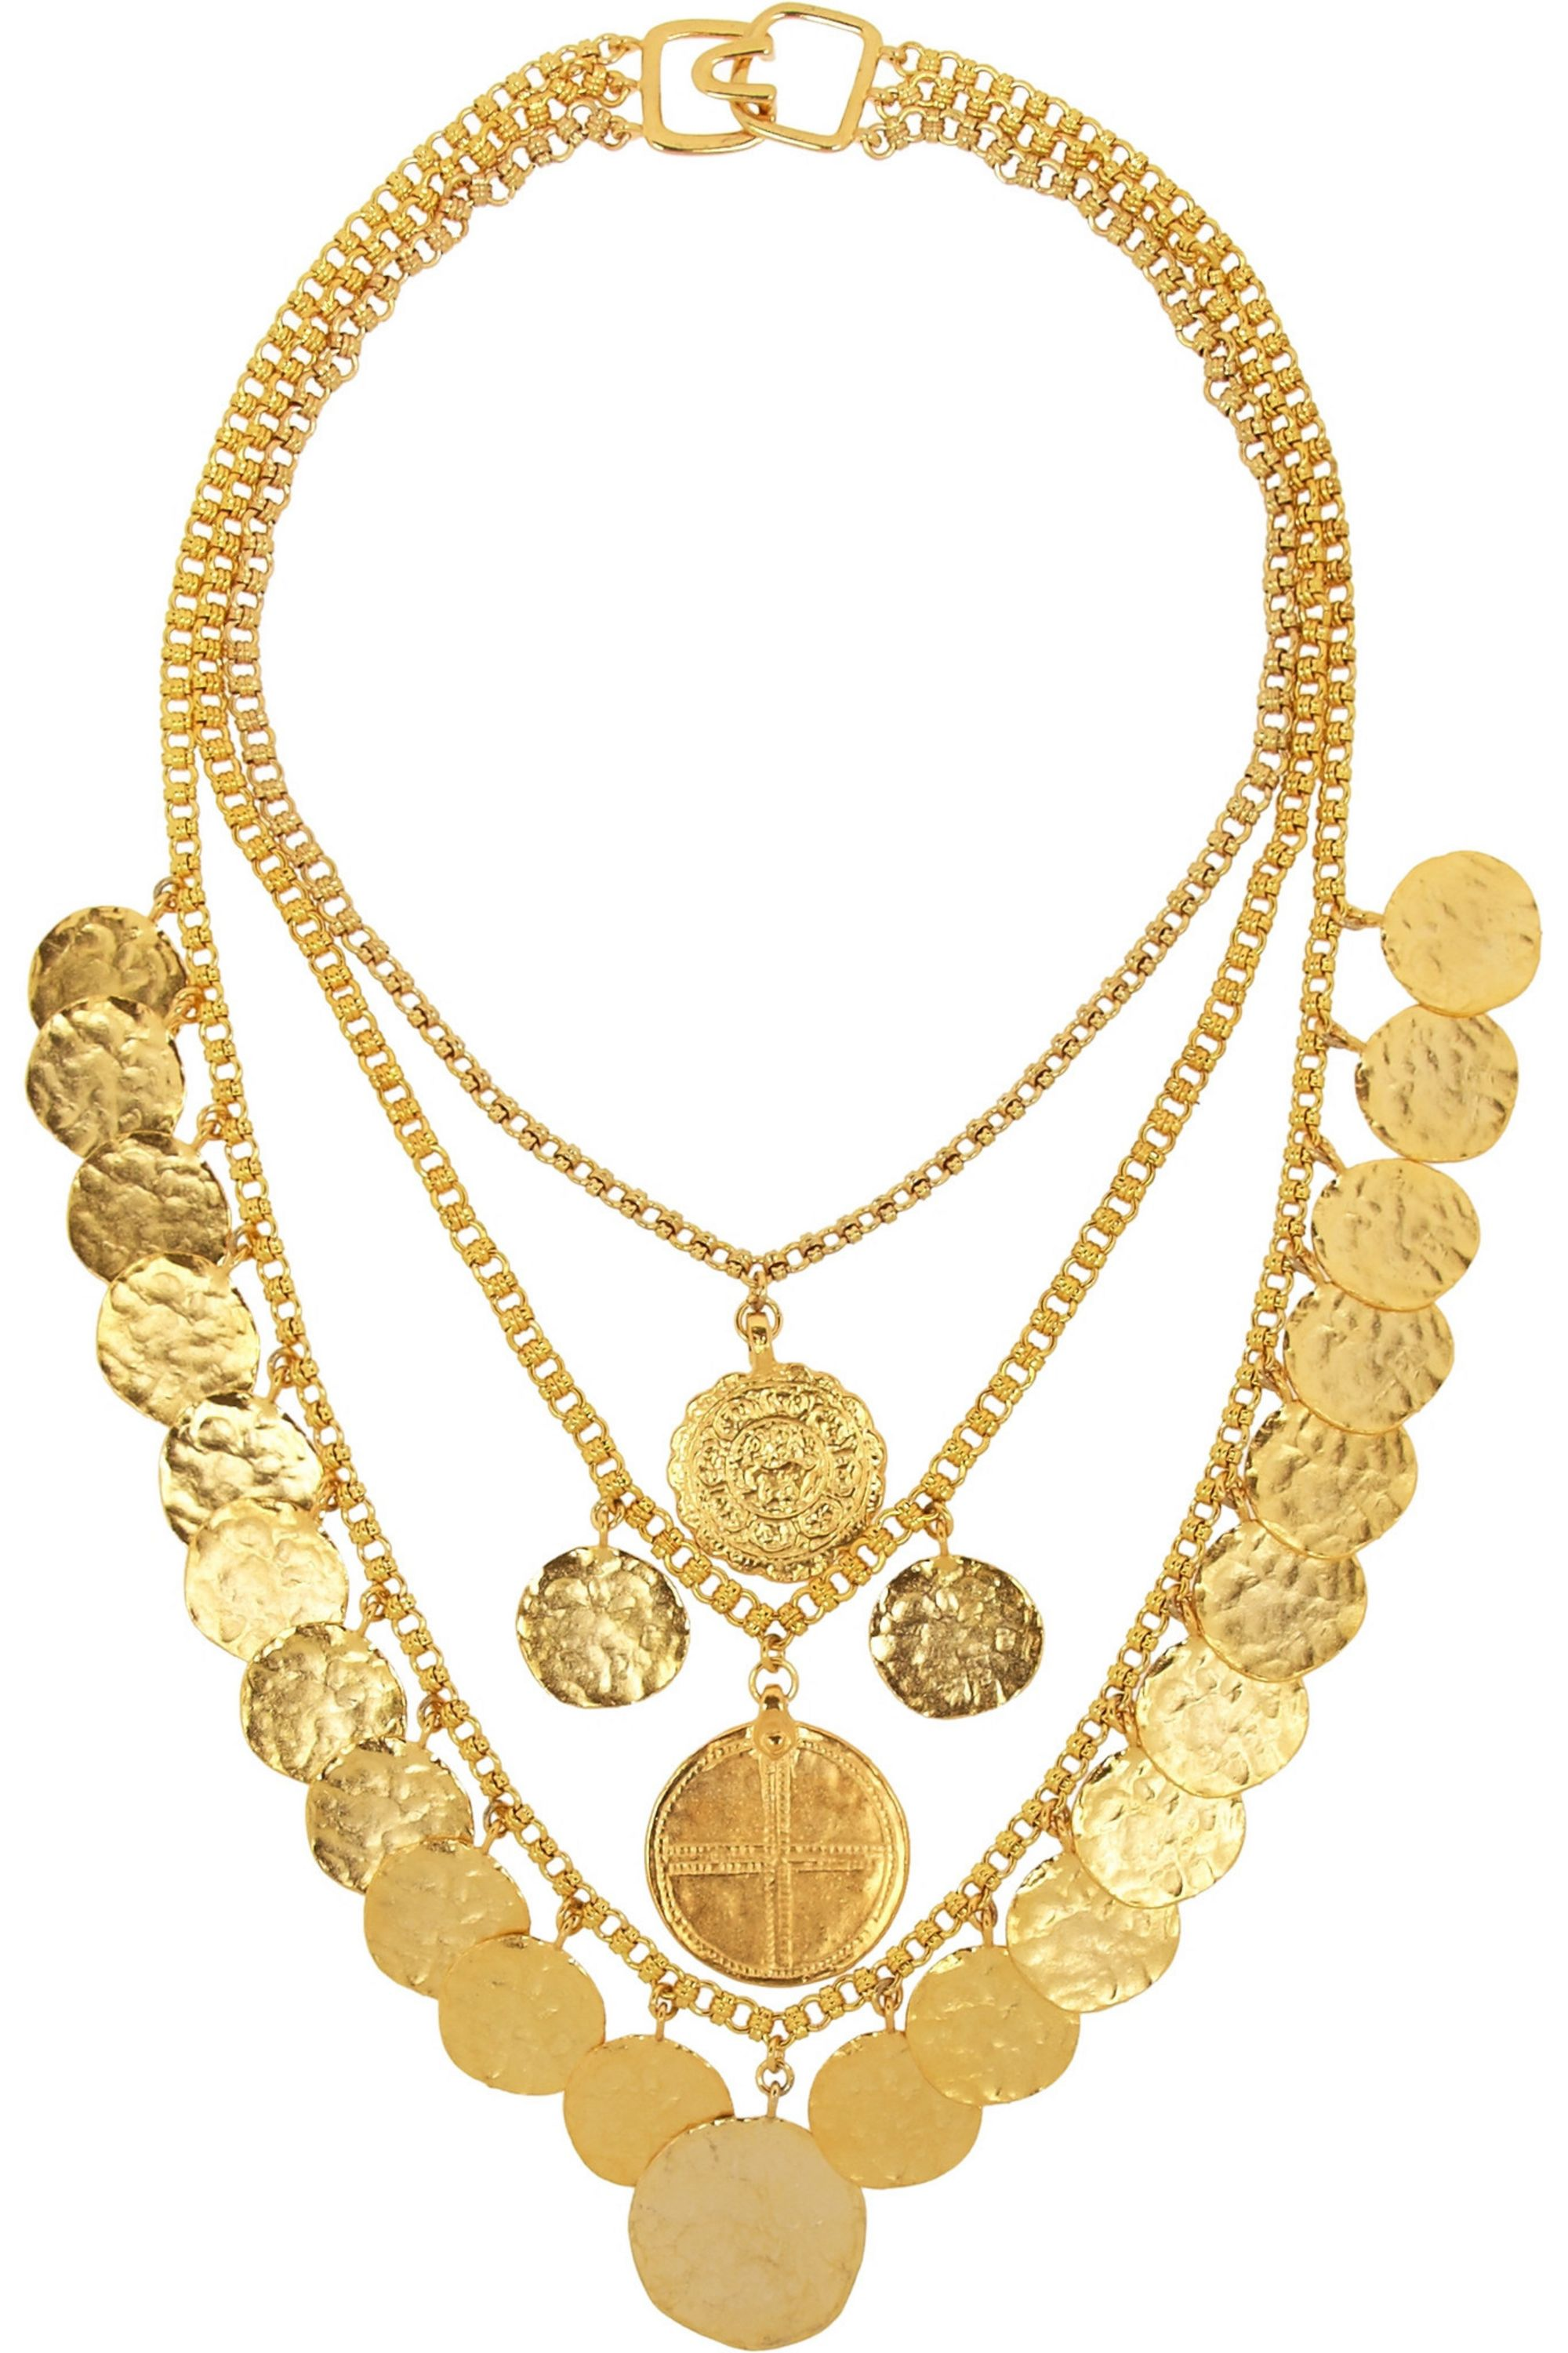 Kenneth Jay Lane Gold-plated coin necklace